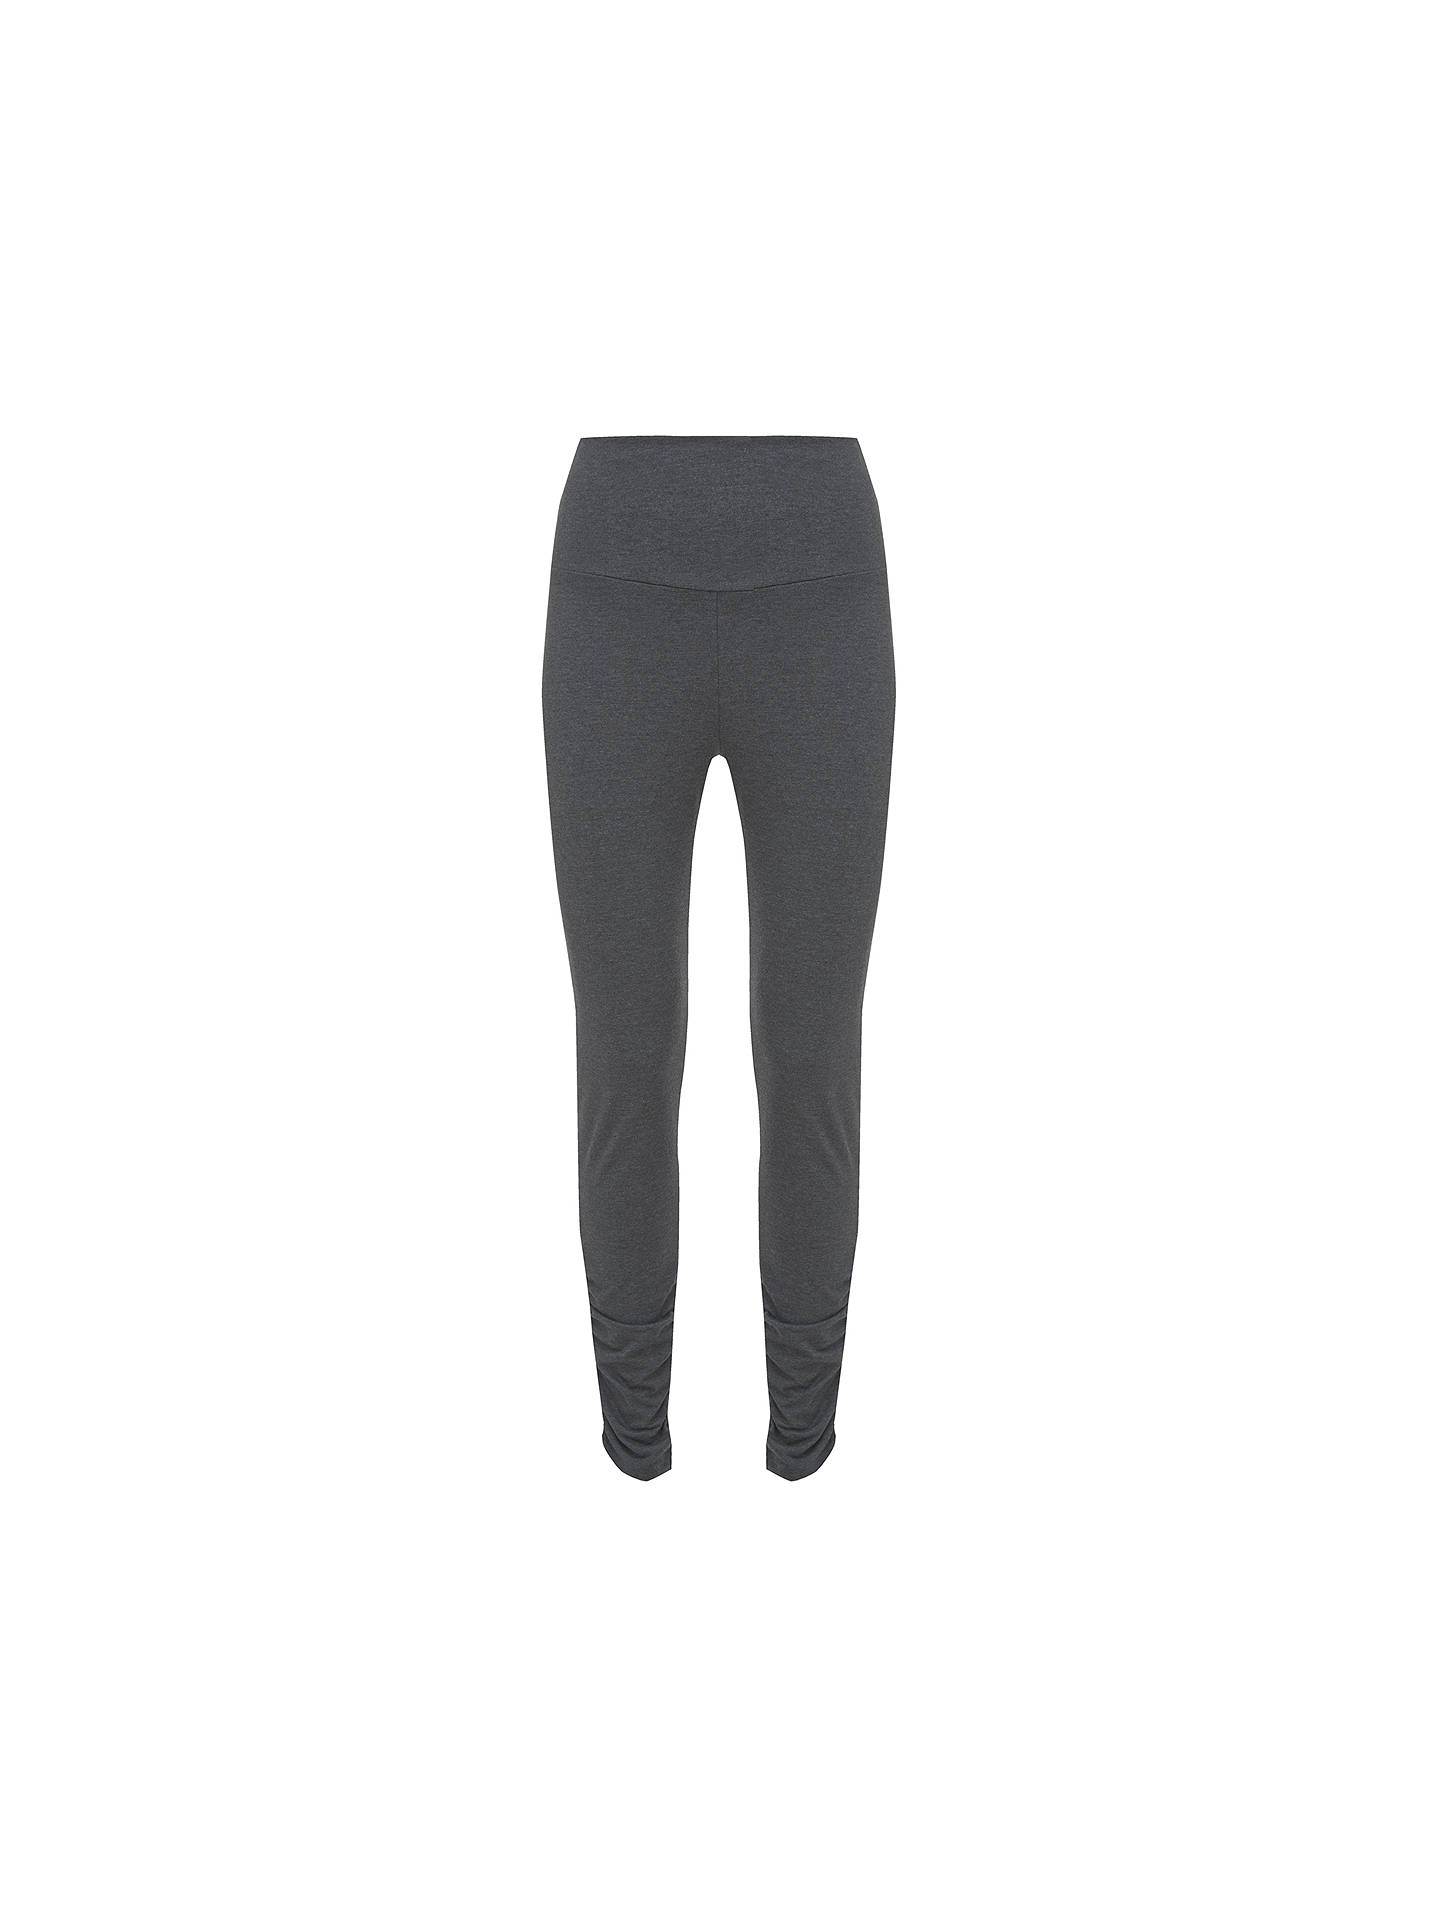 BuyMint Velvet Ankle Zip Leggings, Charcoal, XS Online at johnlewis.com